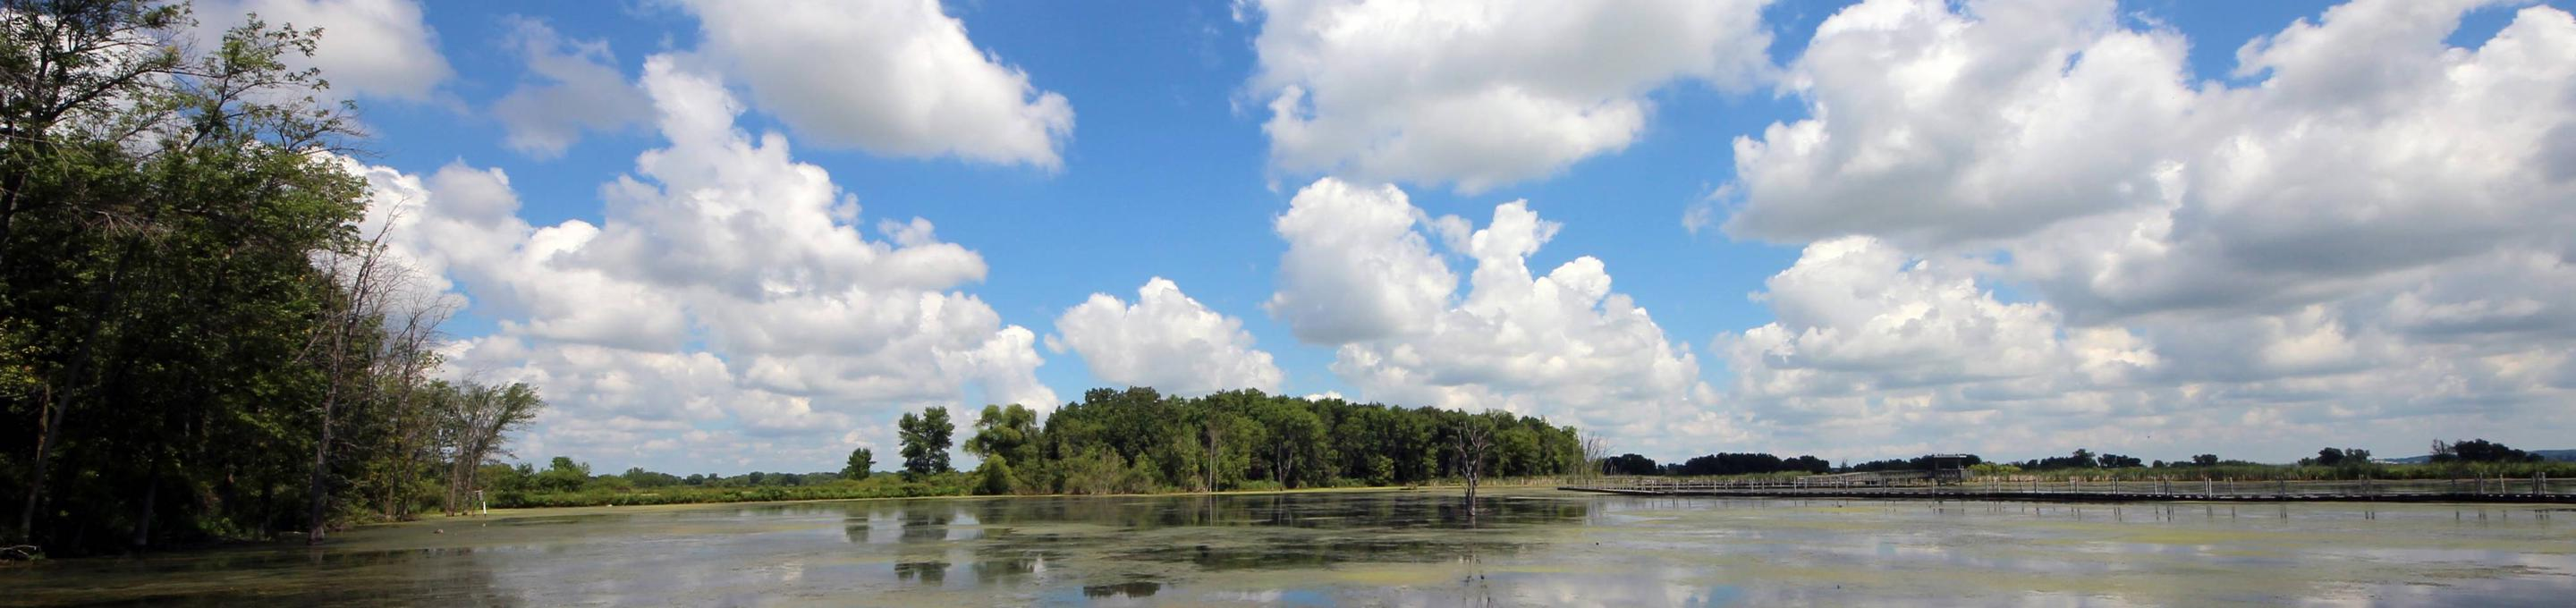 Horicon National Wildlife Refuge, Wisconsin